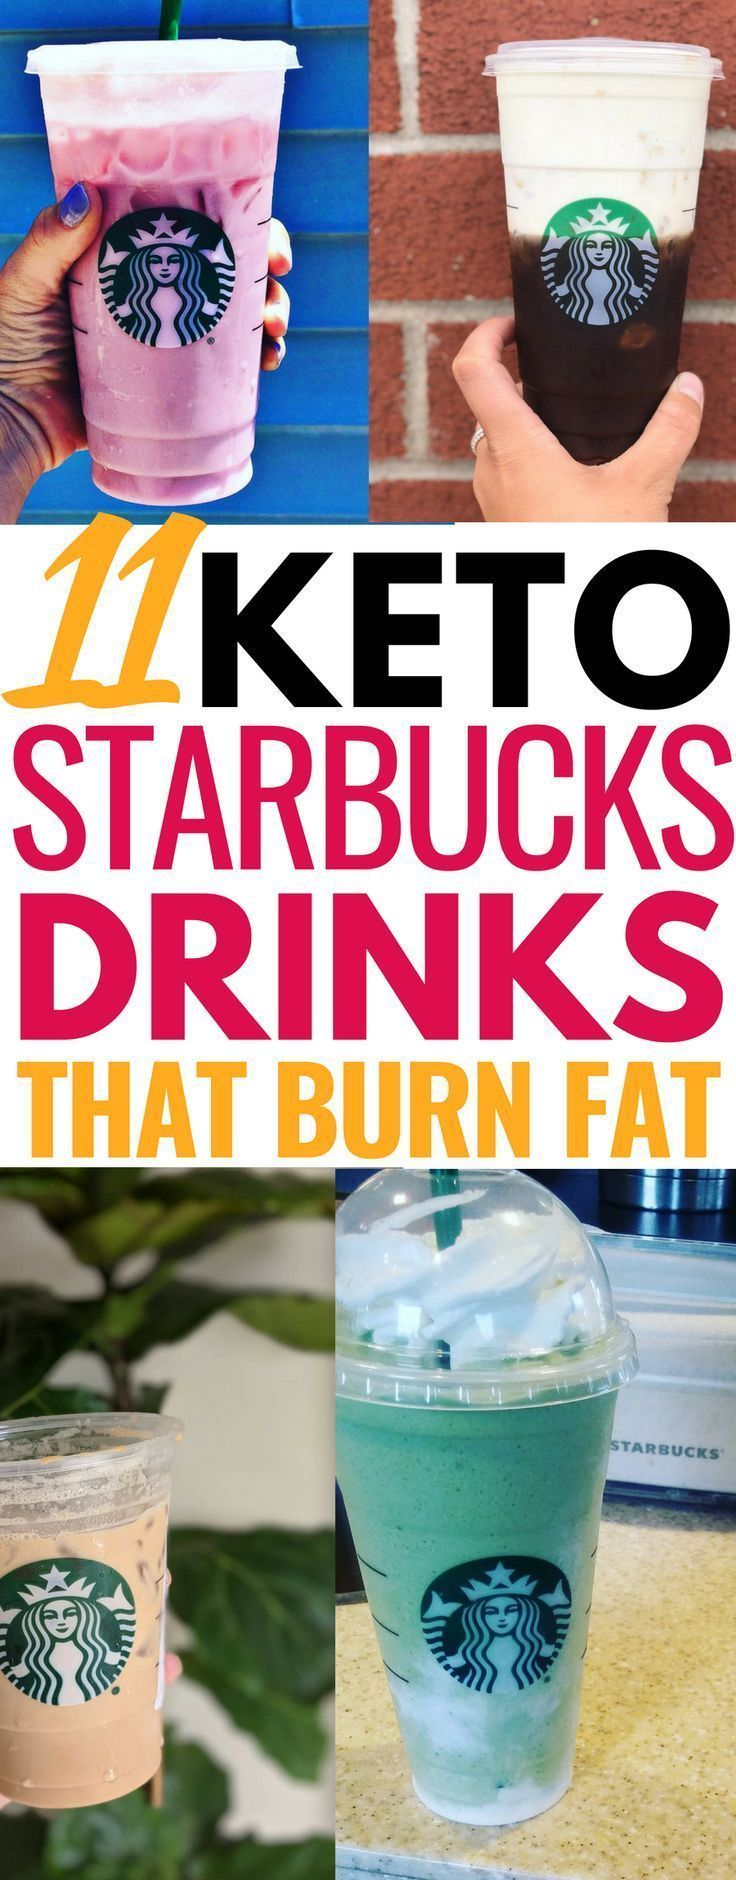 These keto Starbucks drinks are THE BEST! Plus they're perfect for keeping me bu...